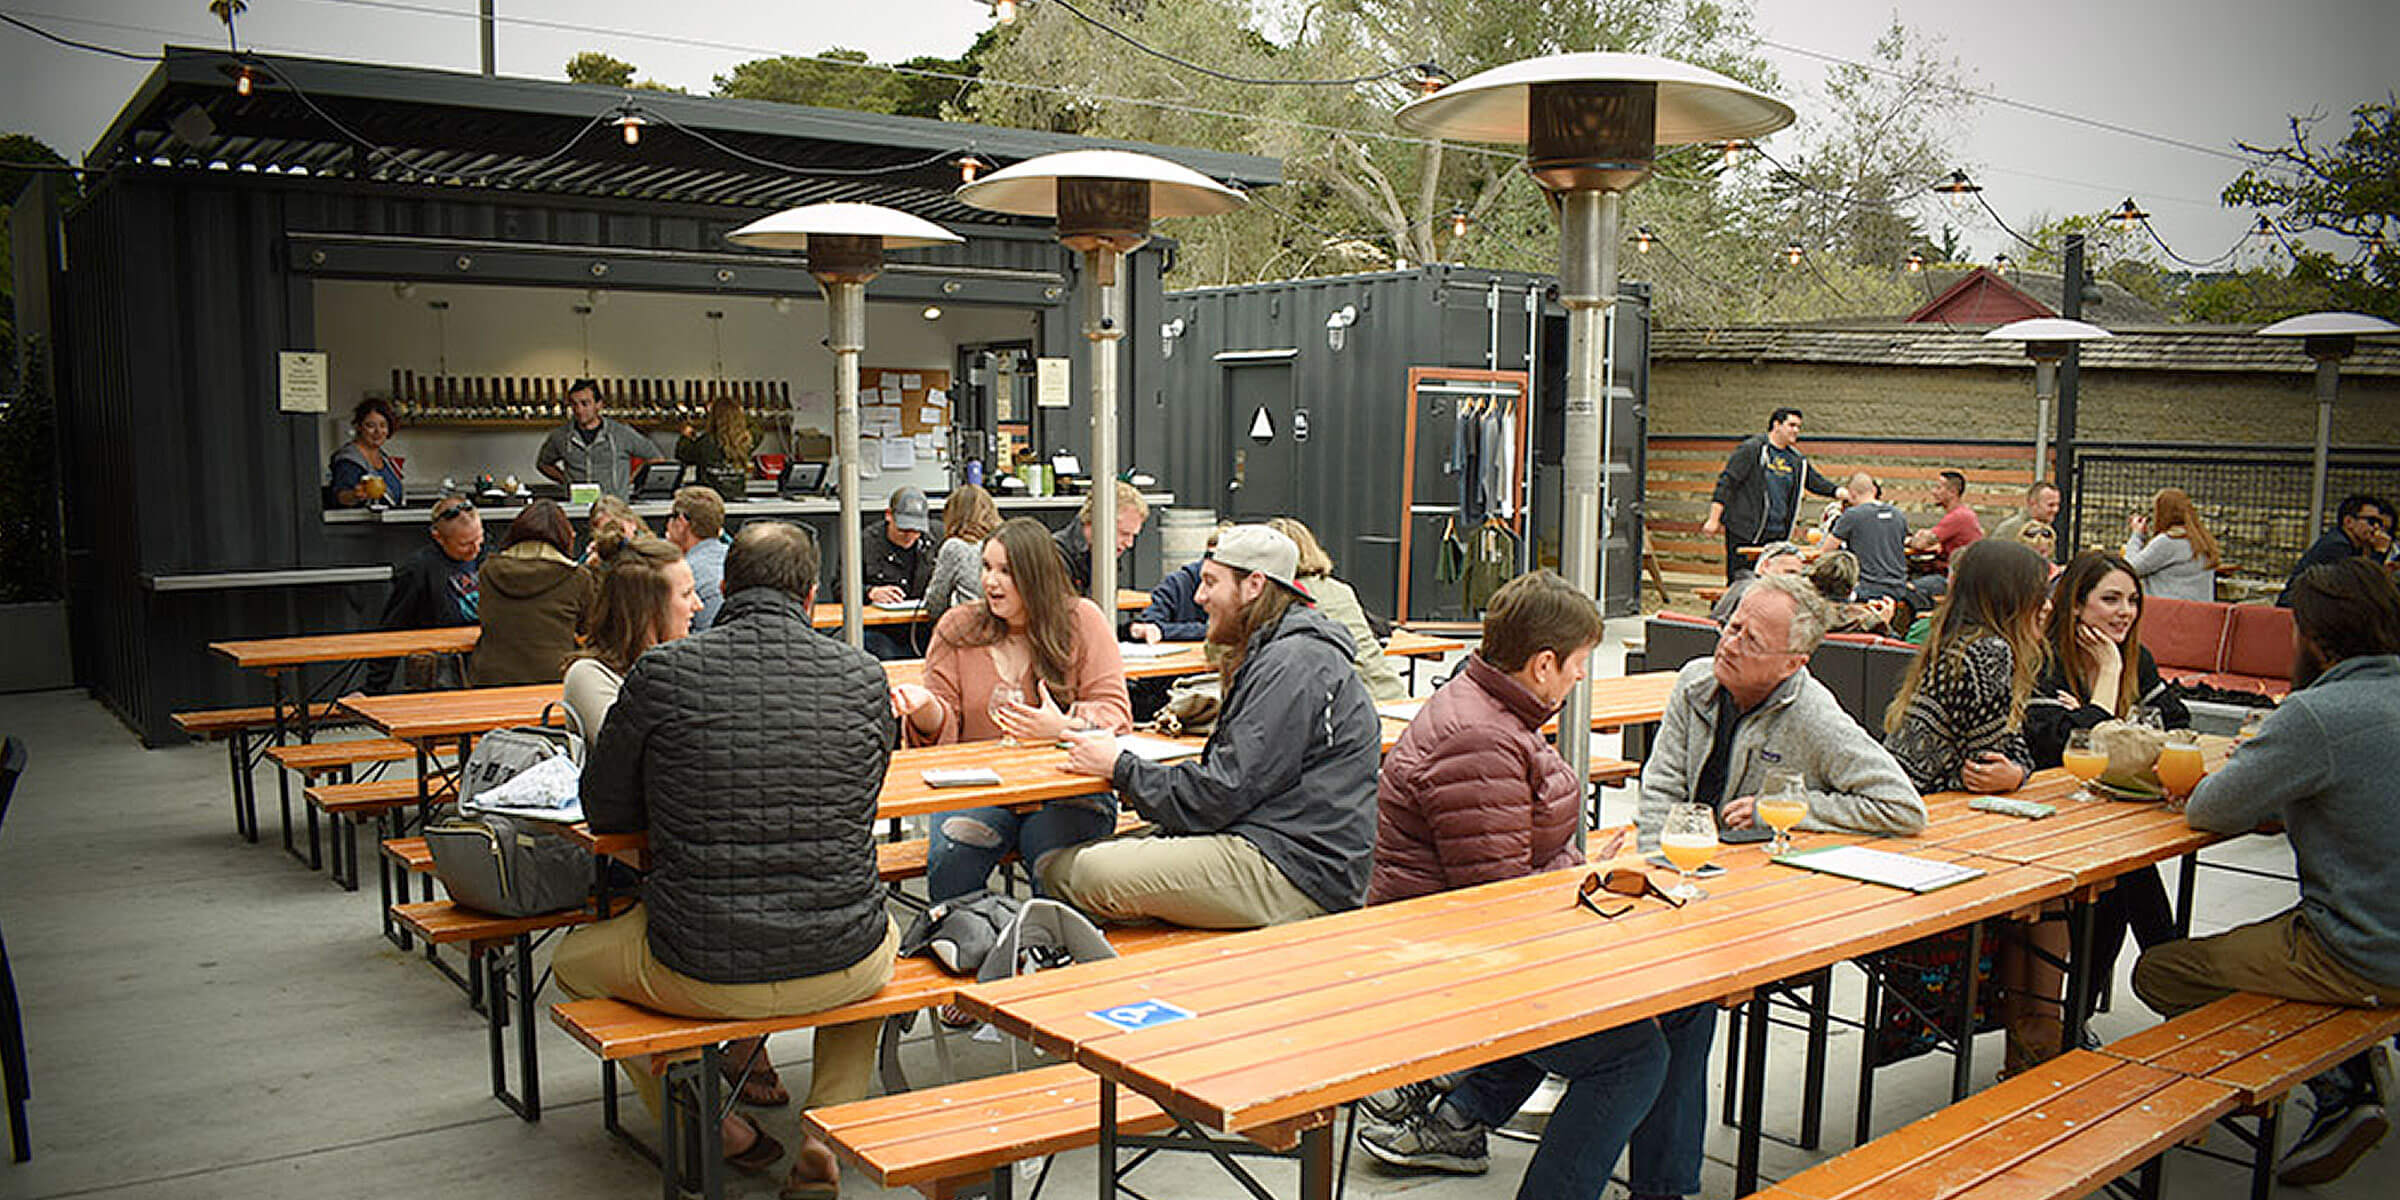 Outside in the beer garden at the Fieldwork Brewing Company location in Monterey, California